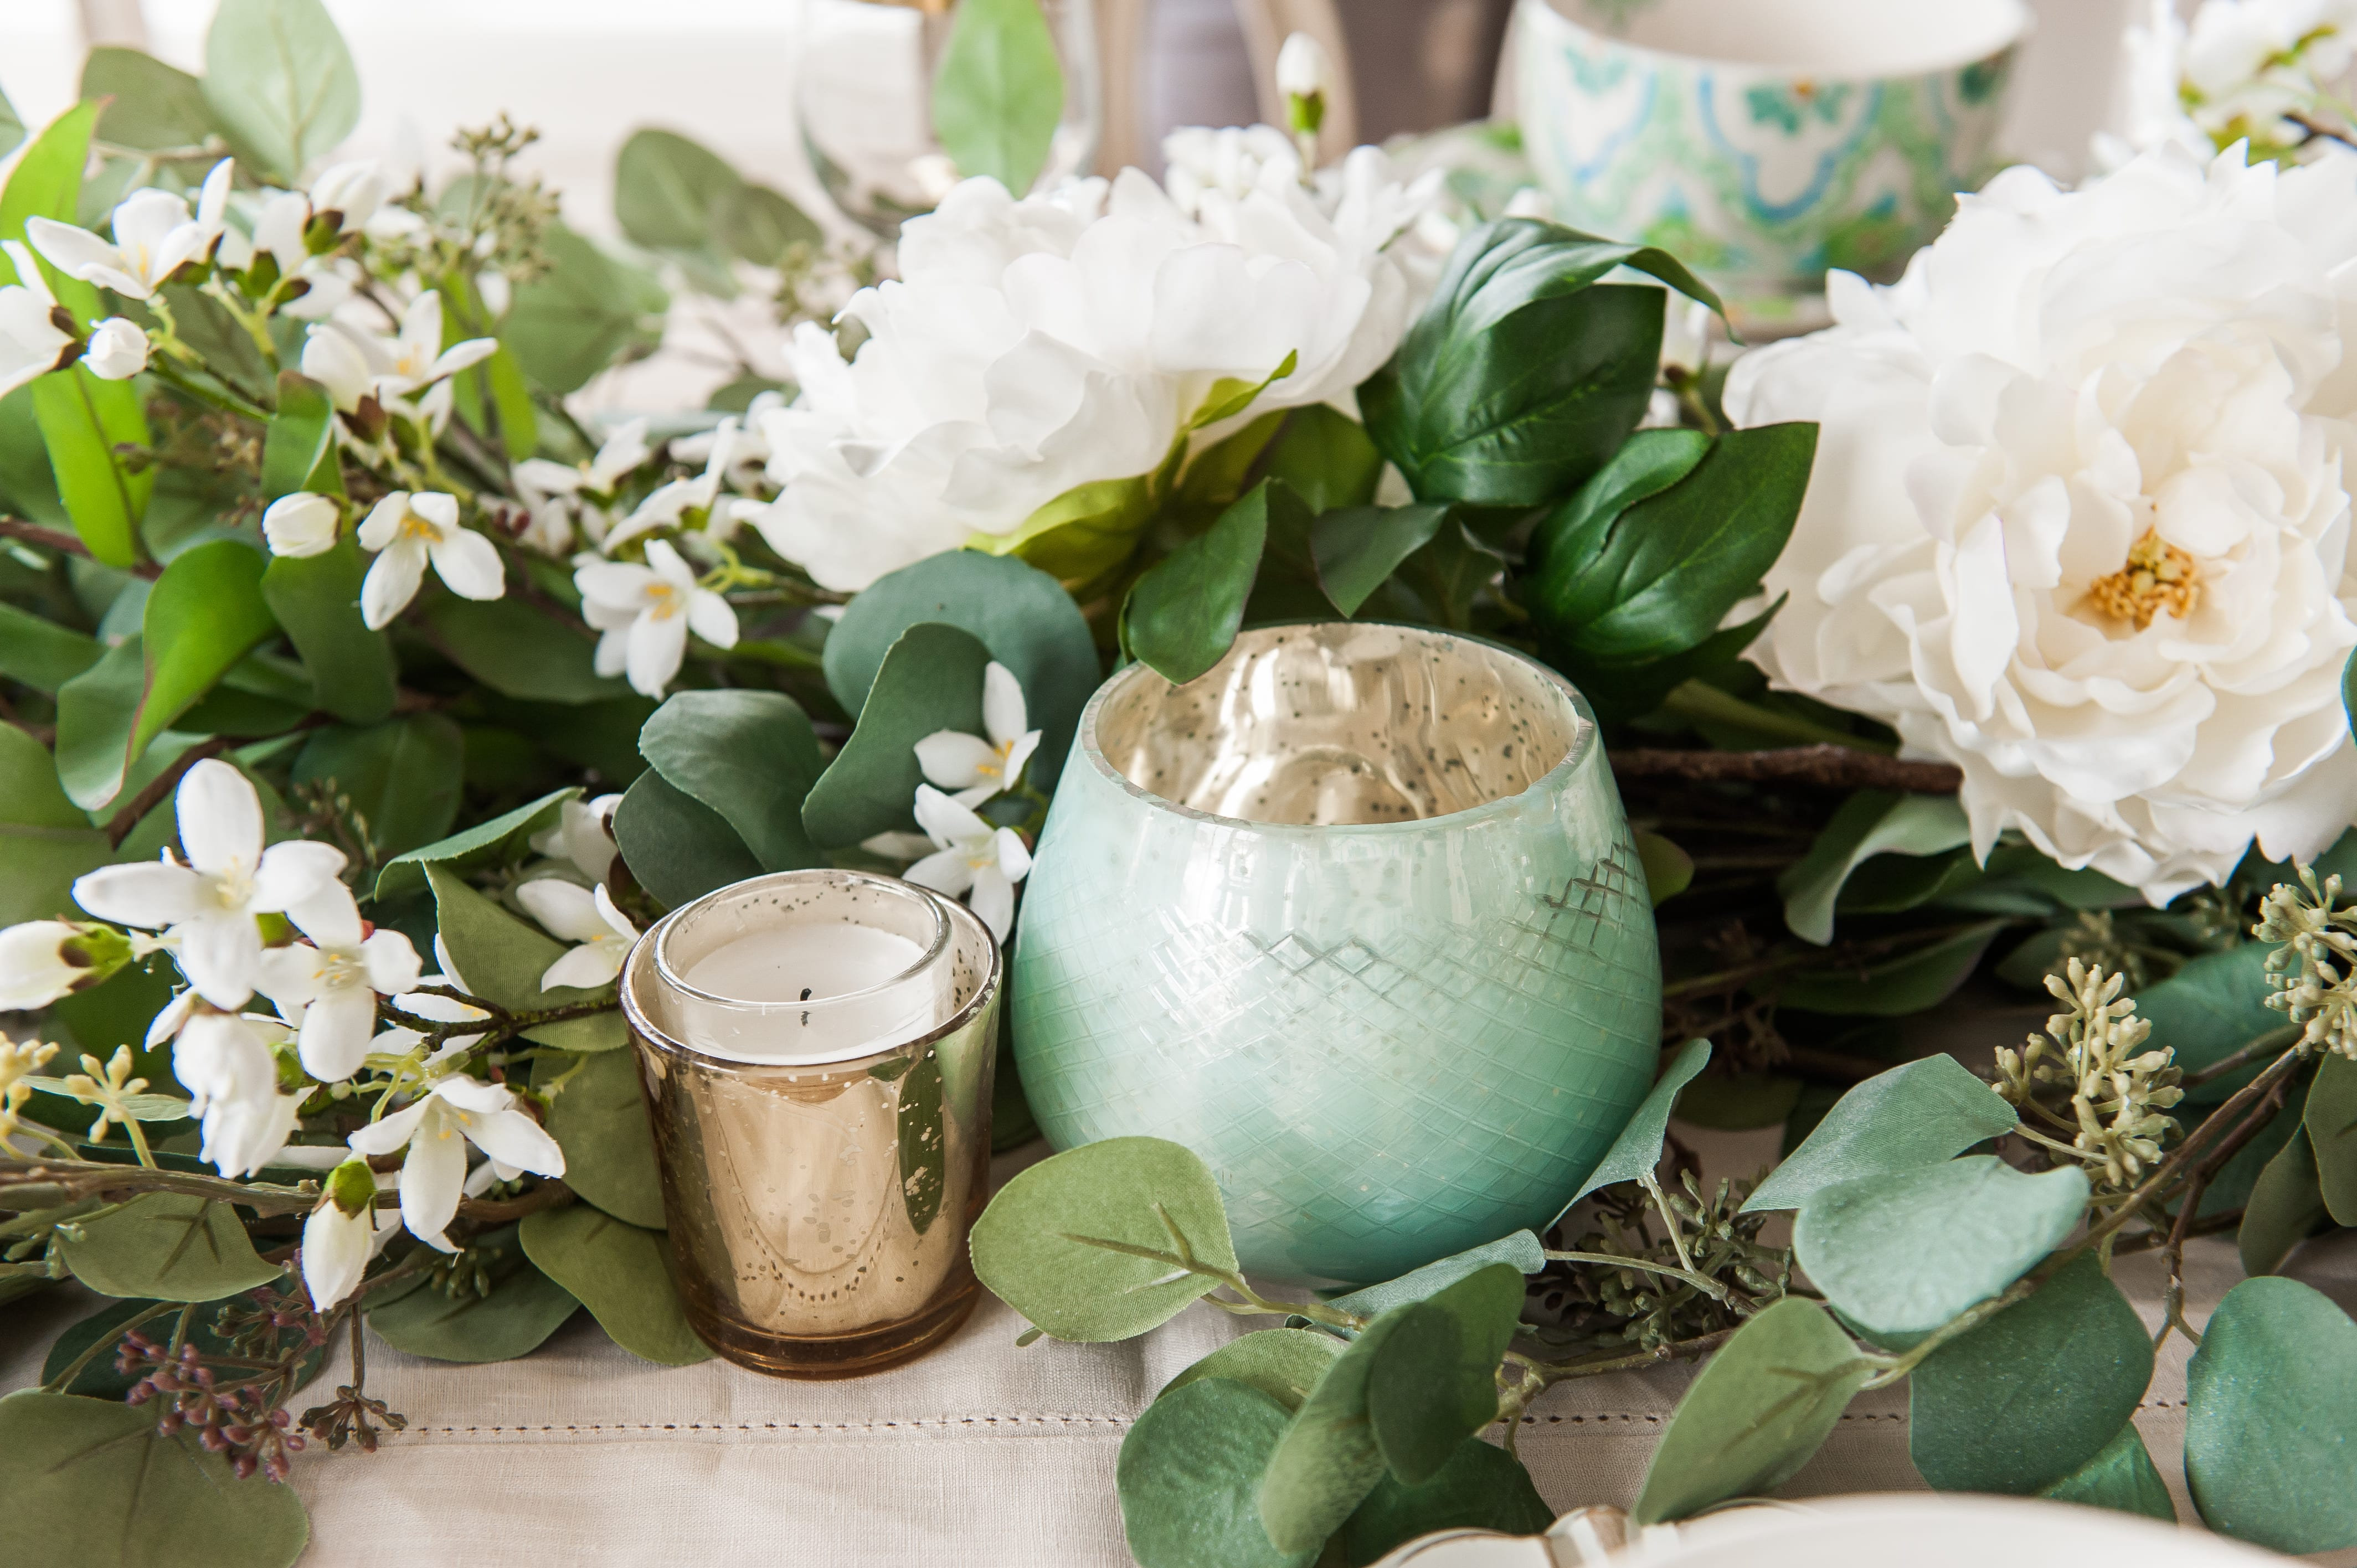 Tablescape spring Tablescapes st. patricks day table decor blue green and white table setting dinnerware easter tablescape easter dinner table dining room table setting place setting table decor idea garland centerpiece table runner